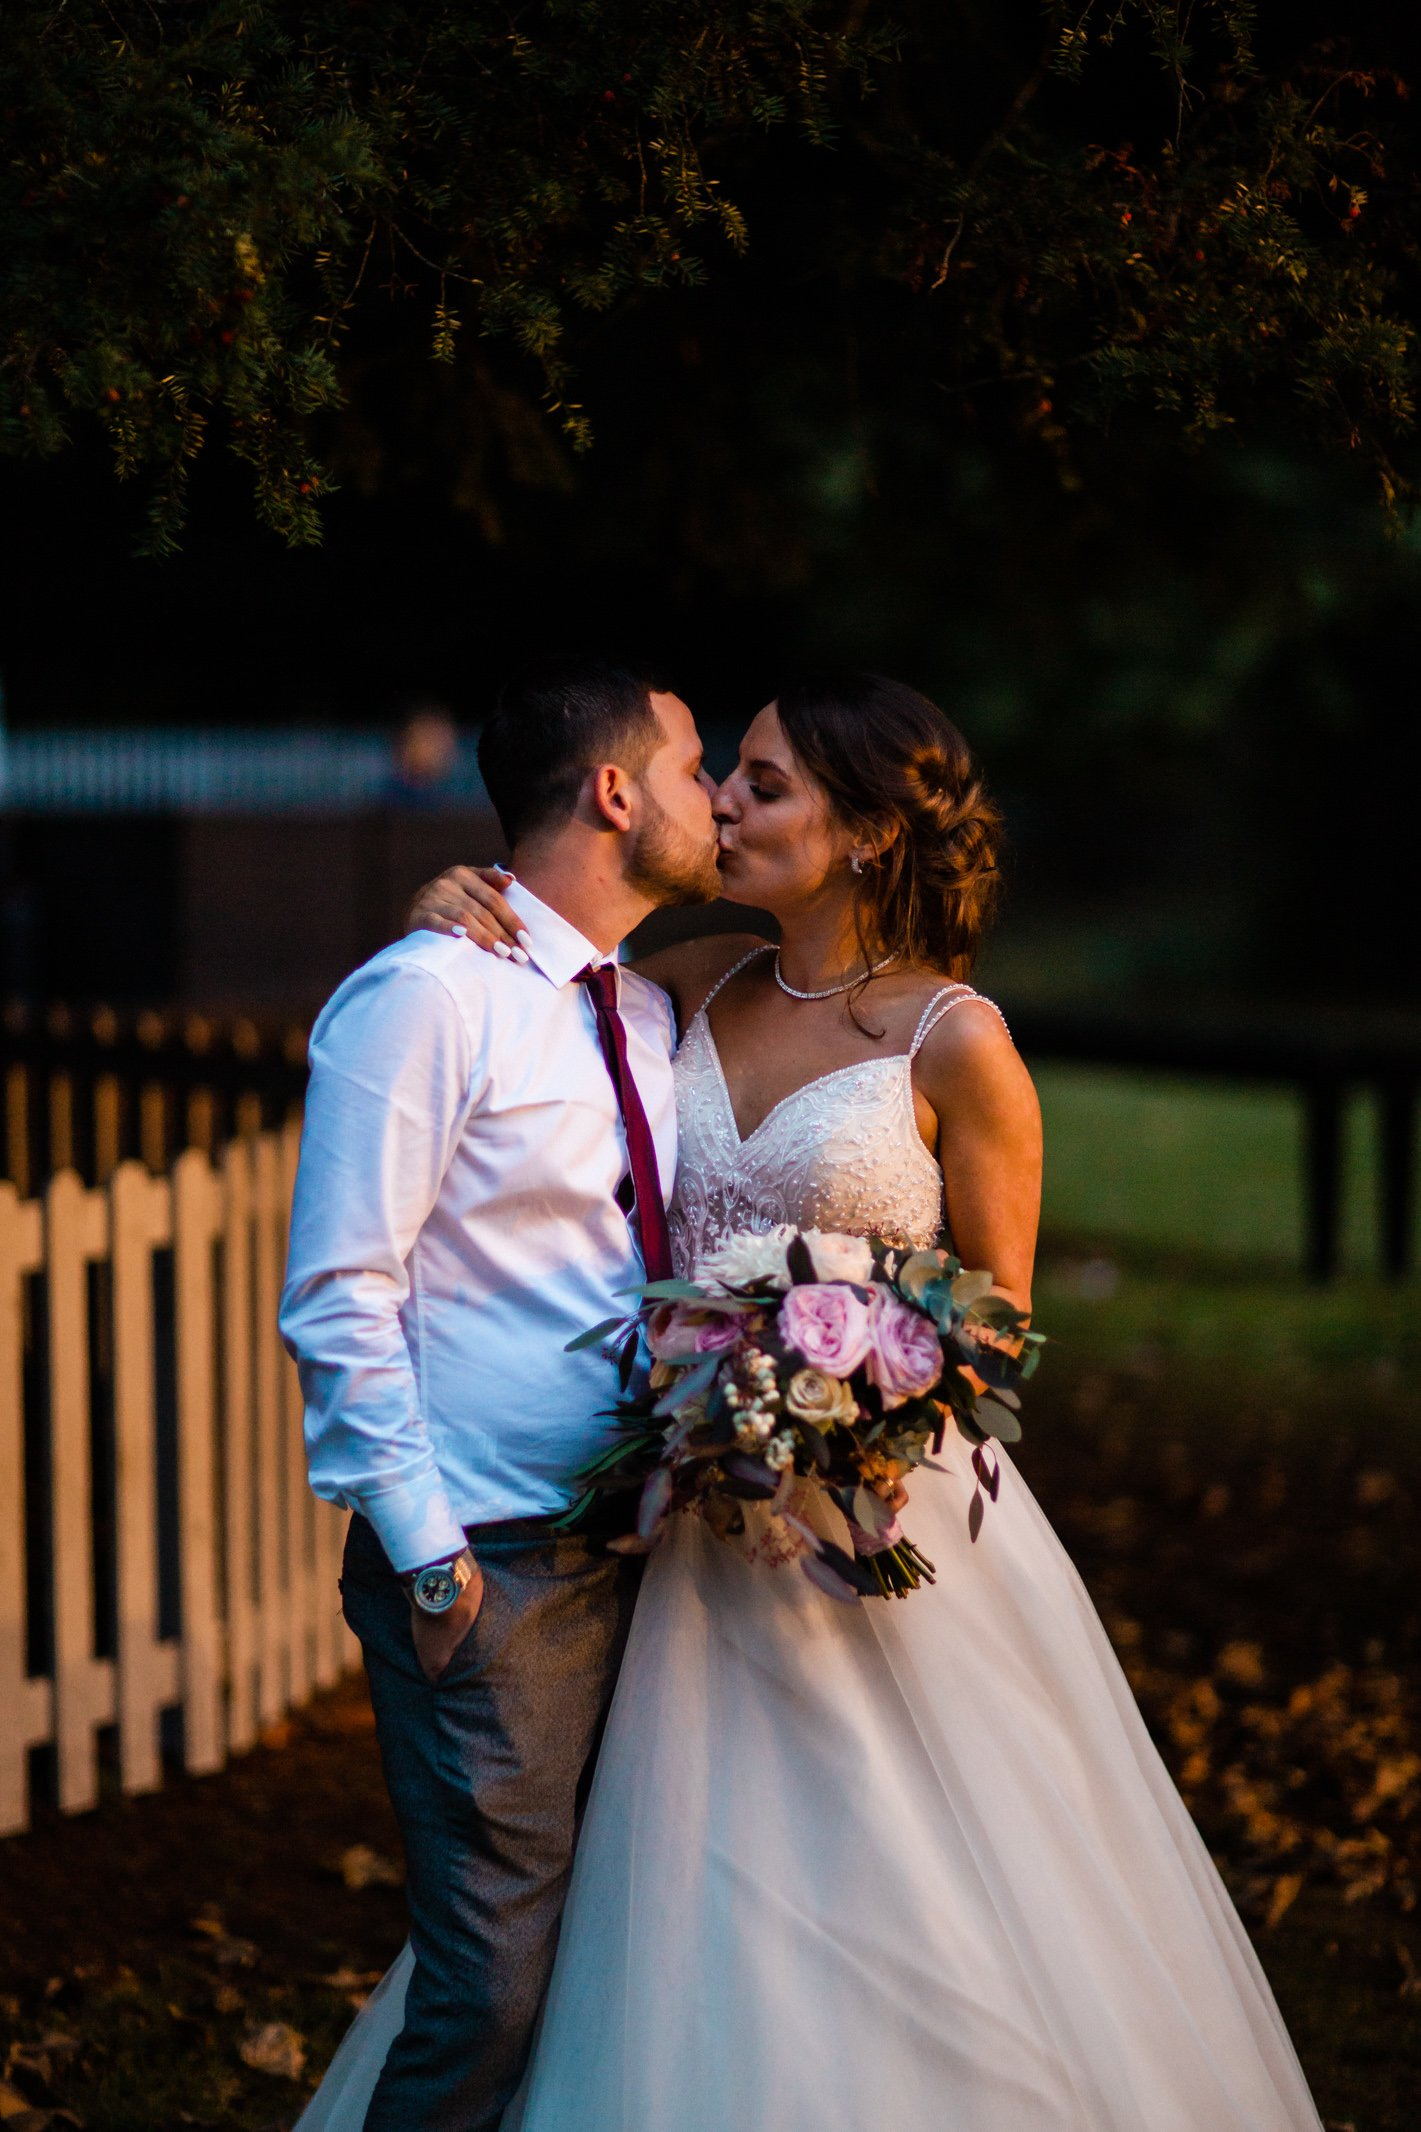 The Elephant Pangbourne Wedding - Stunning Kayleigh & Shane 90